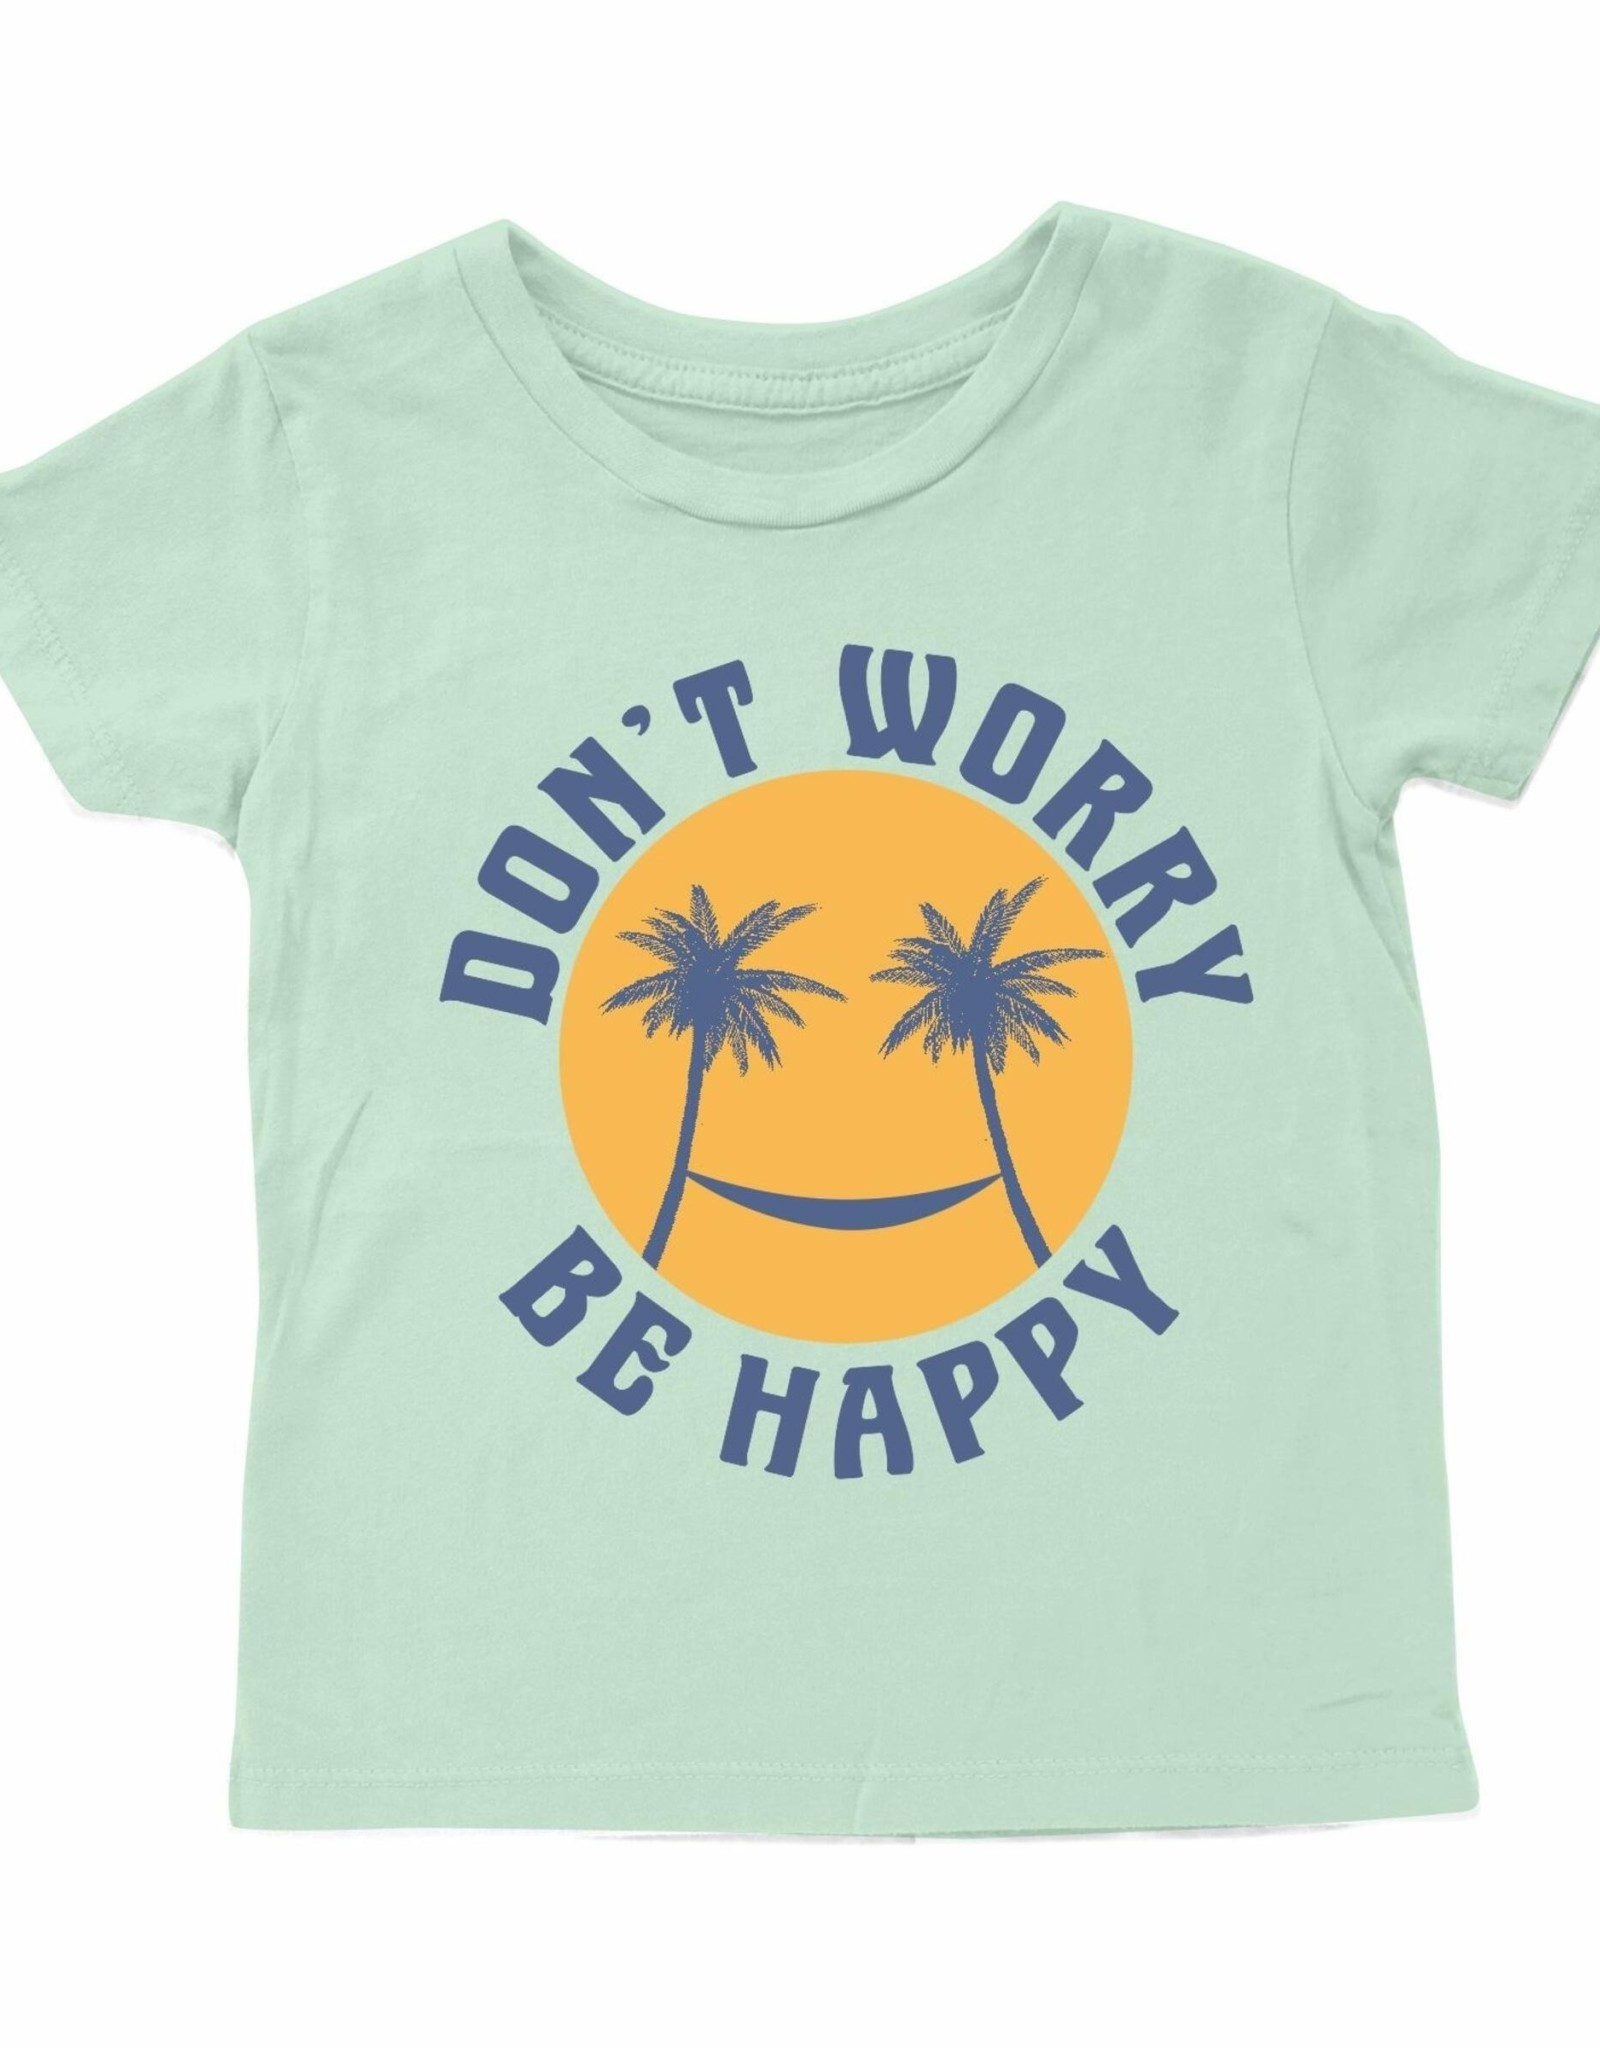 Tiny Whales don't worry tee